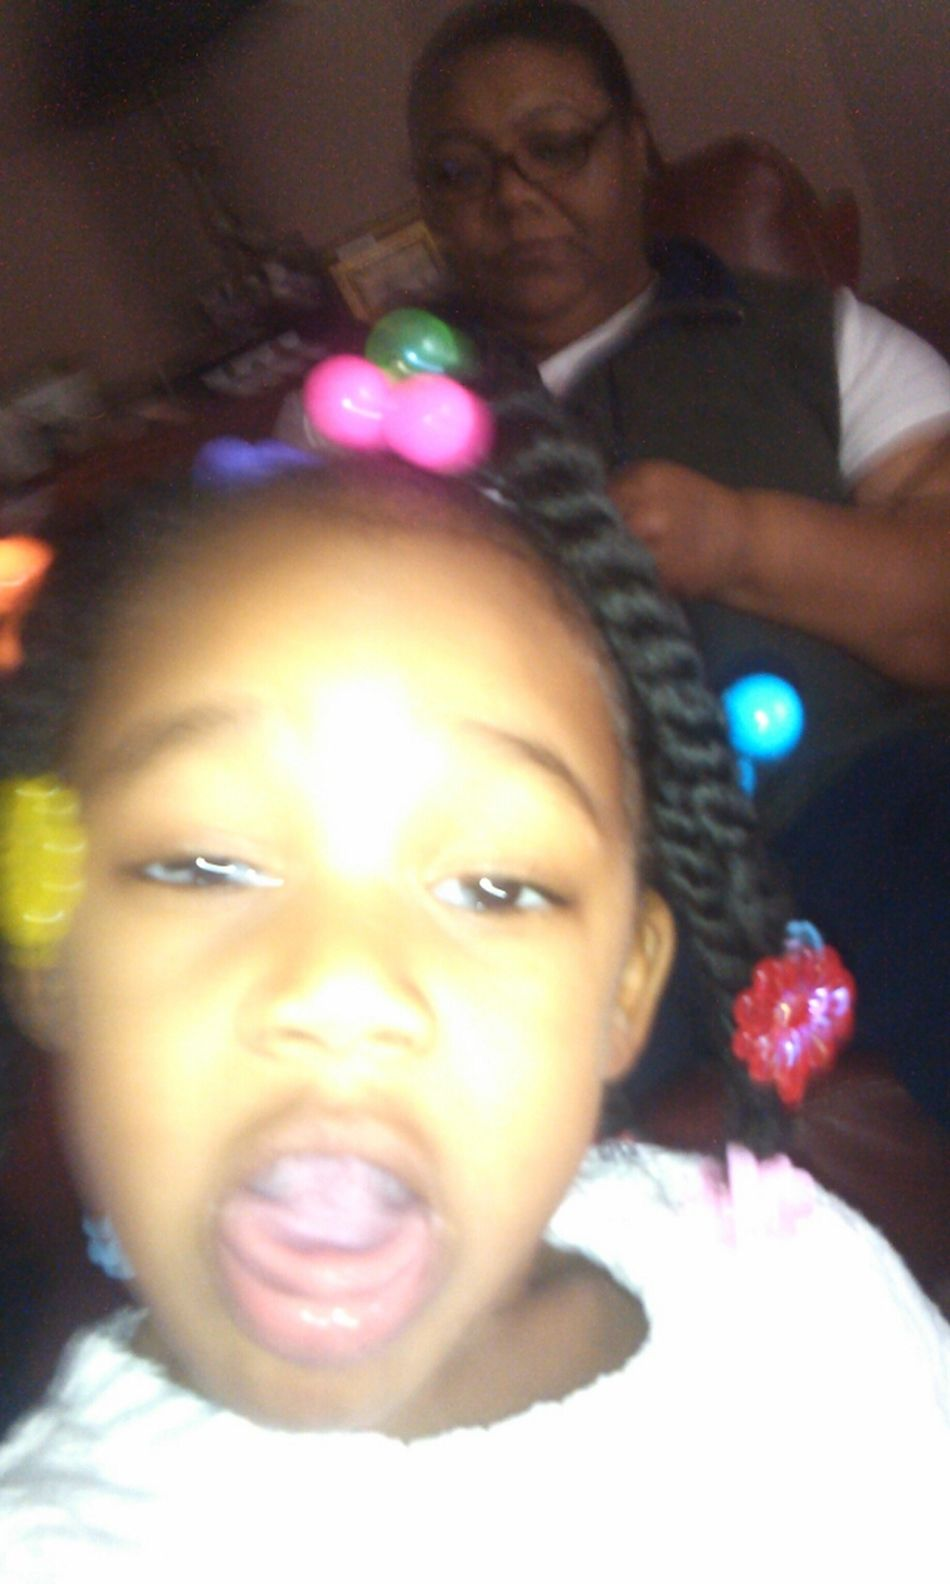 thinking shes grown and takeing pictures on my phone smh shes a mess but gotta love her...